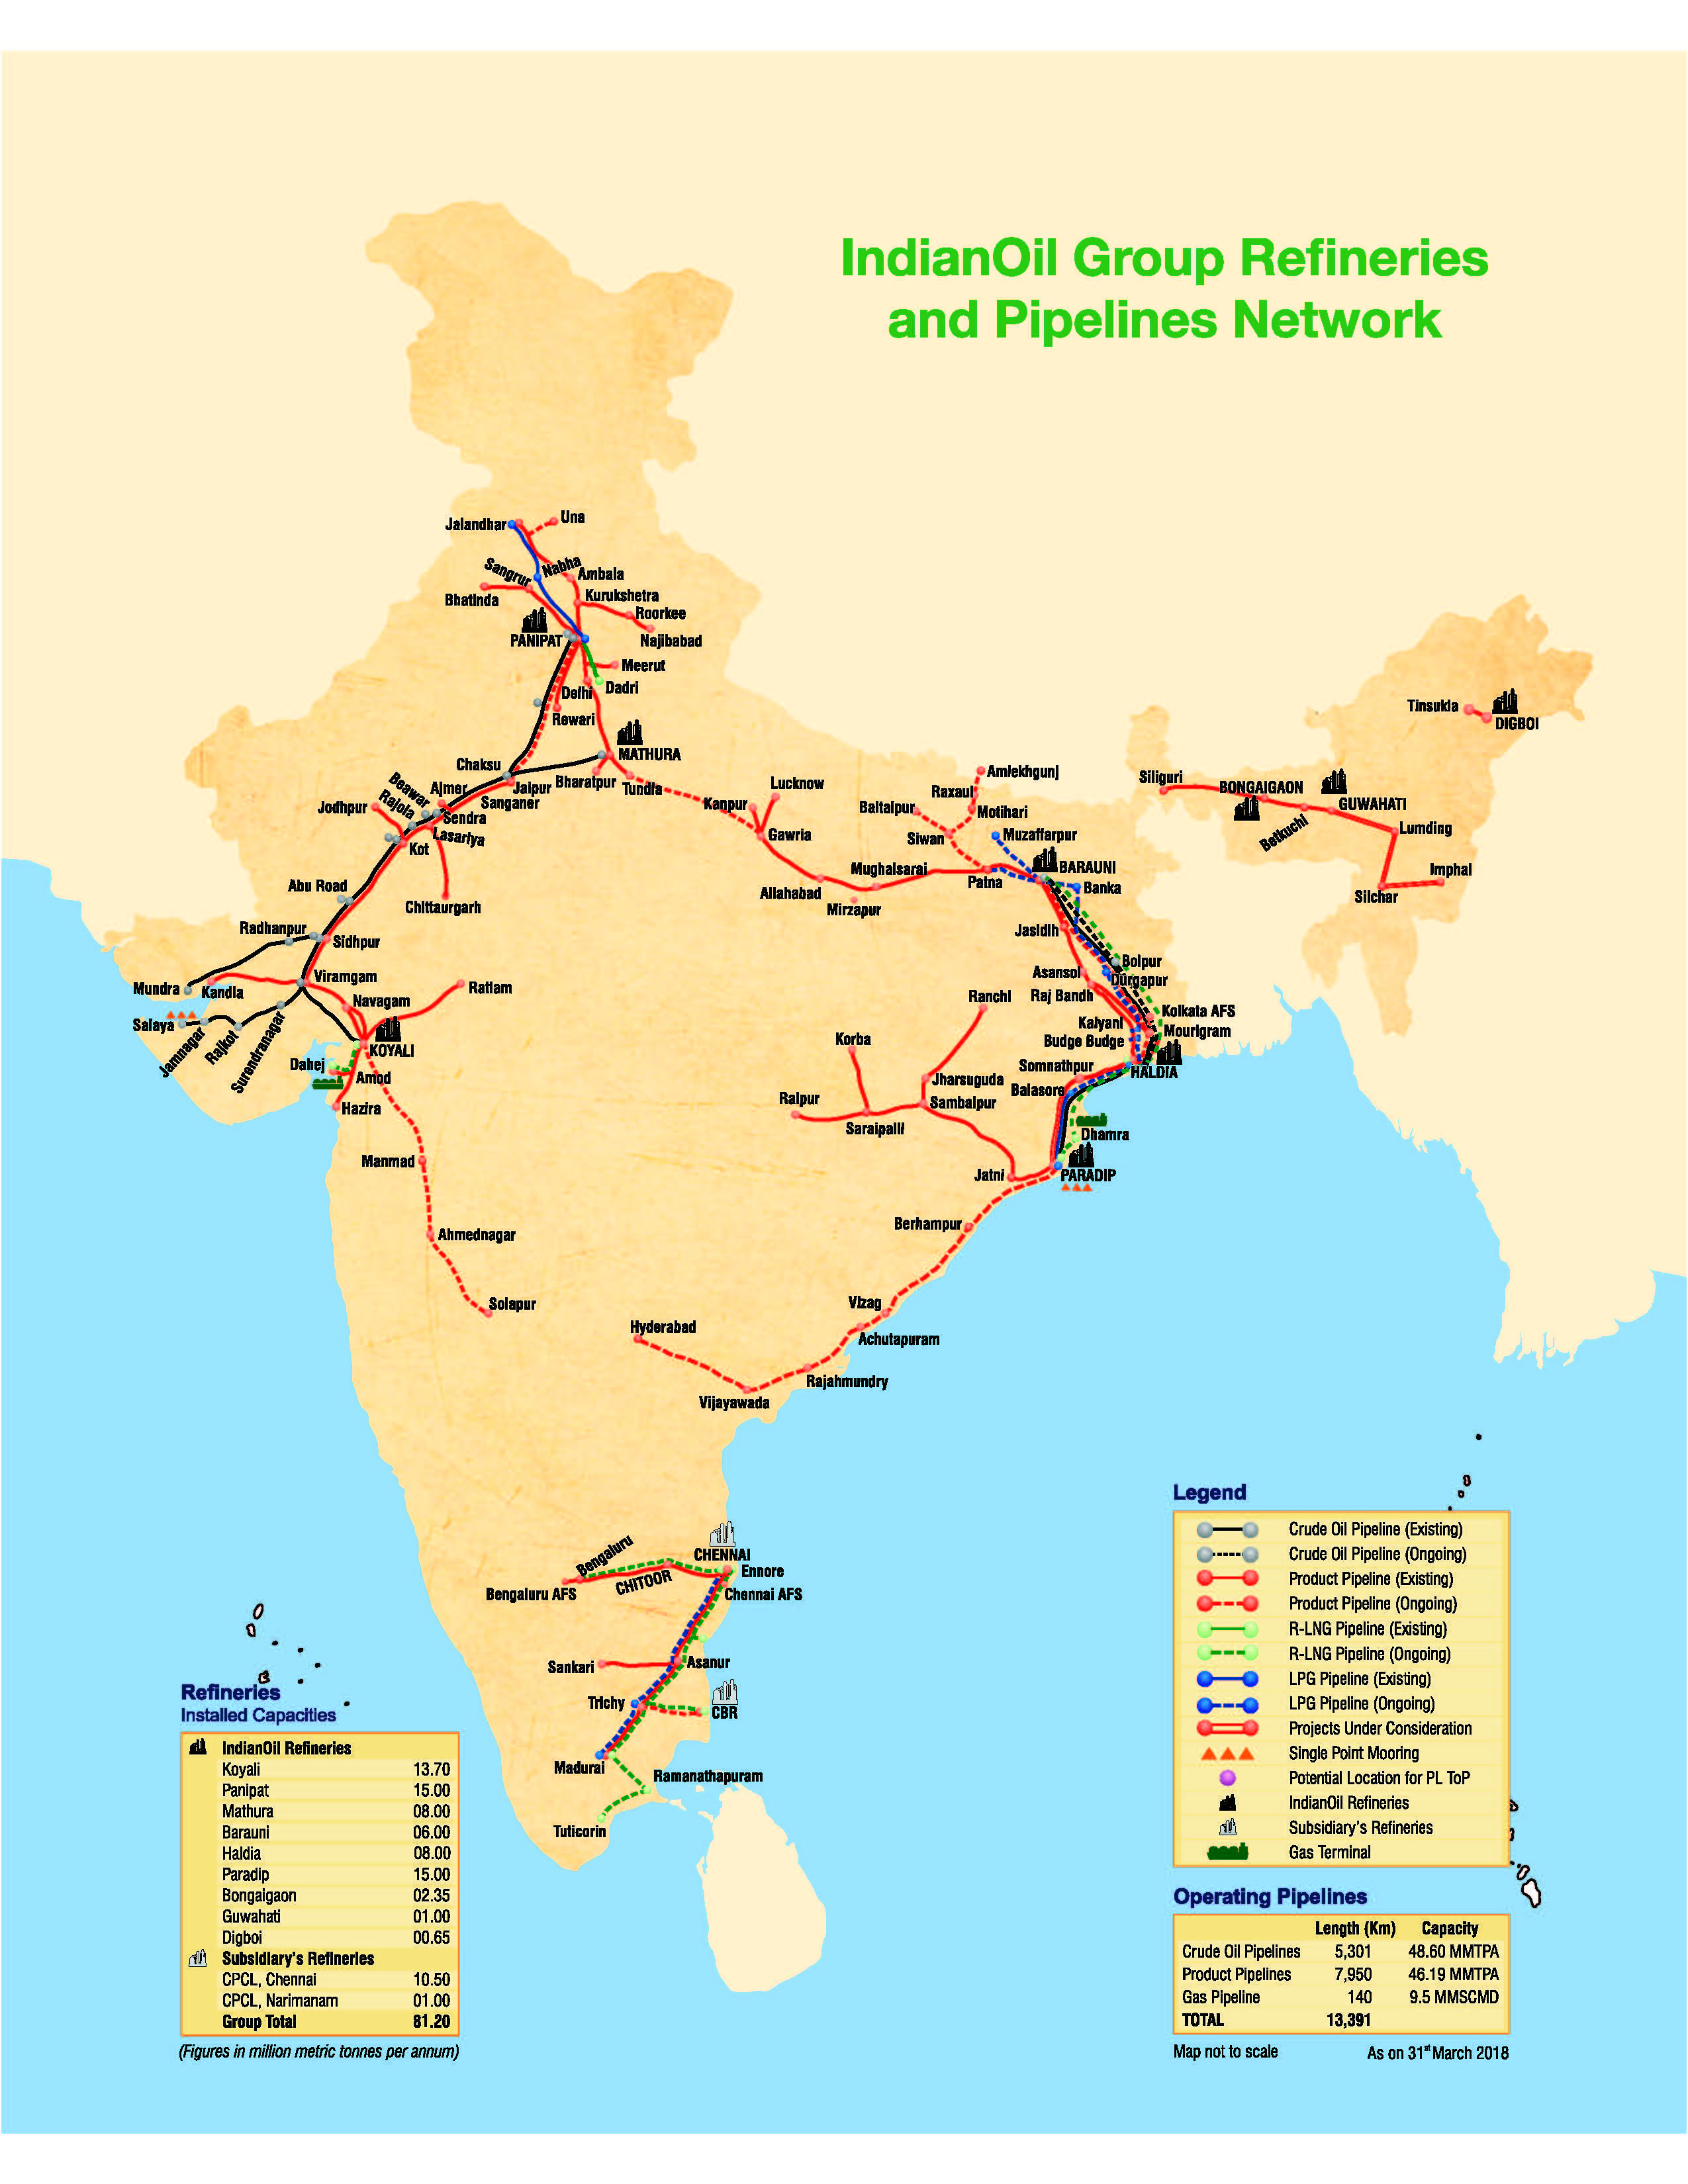 Pipelines oil and gas pipeline gas and oil energy as a pioneer in oil pipelines in the country managing one of the worlds largest oil pipeline networks indianoil achieved the highest ever throughput of sciox Choice Image